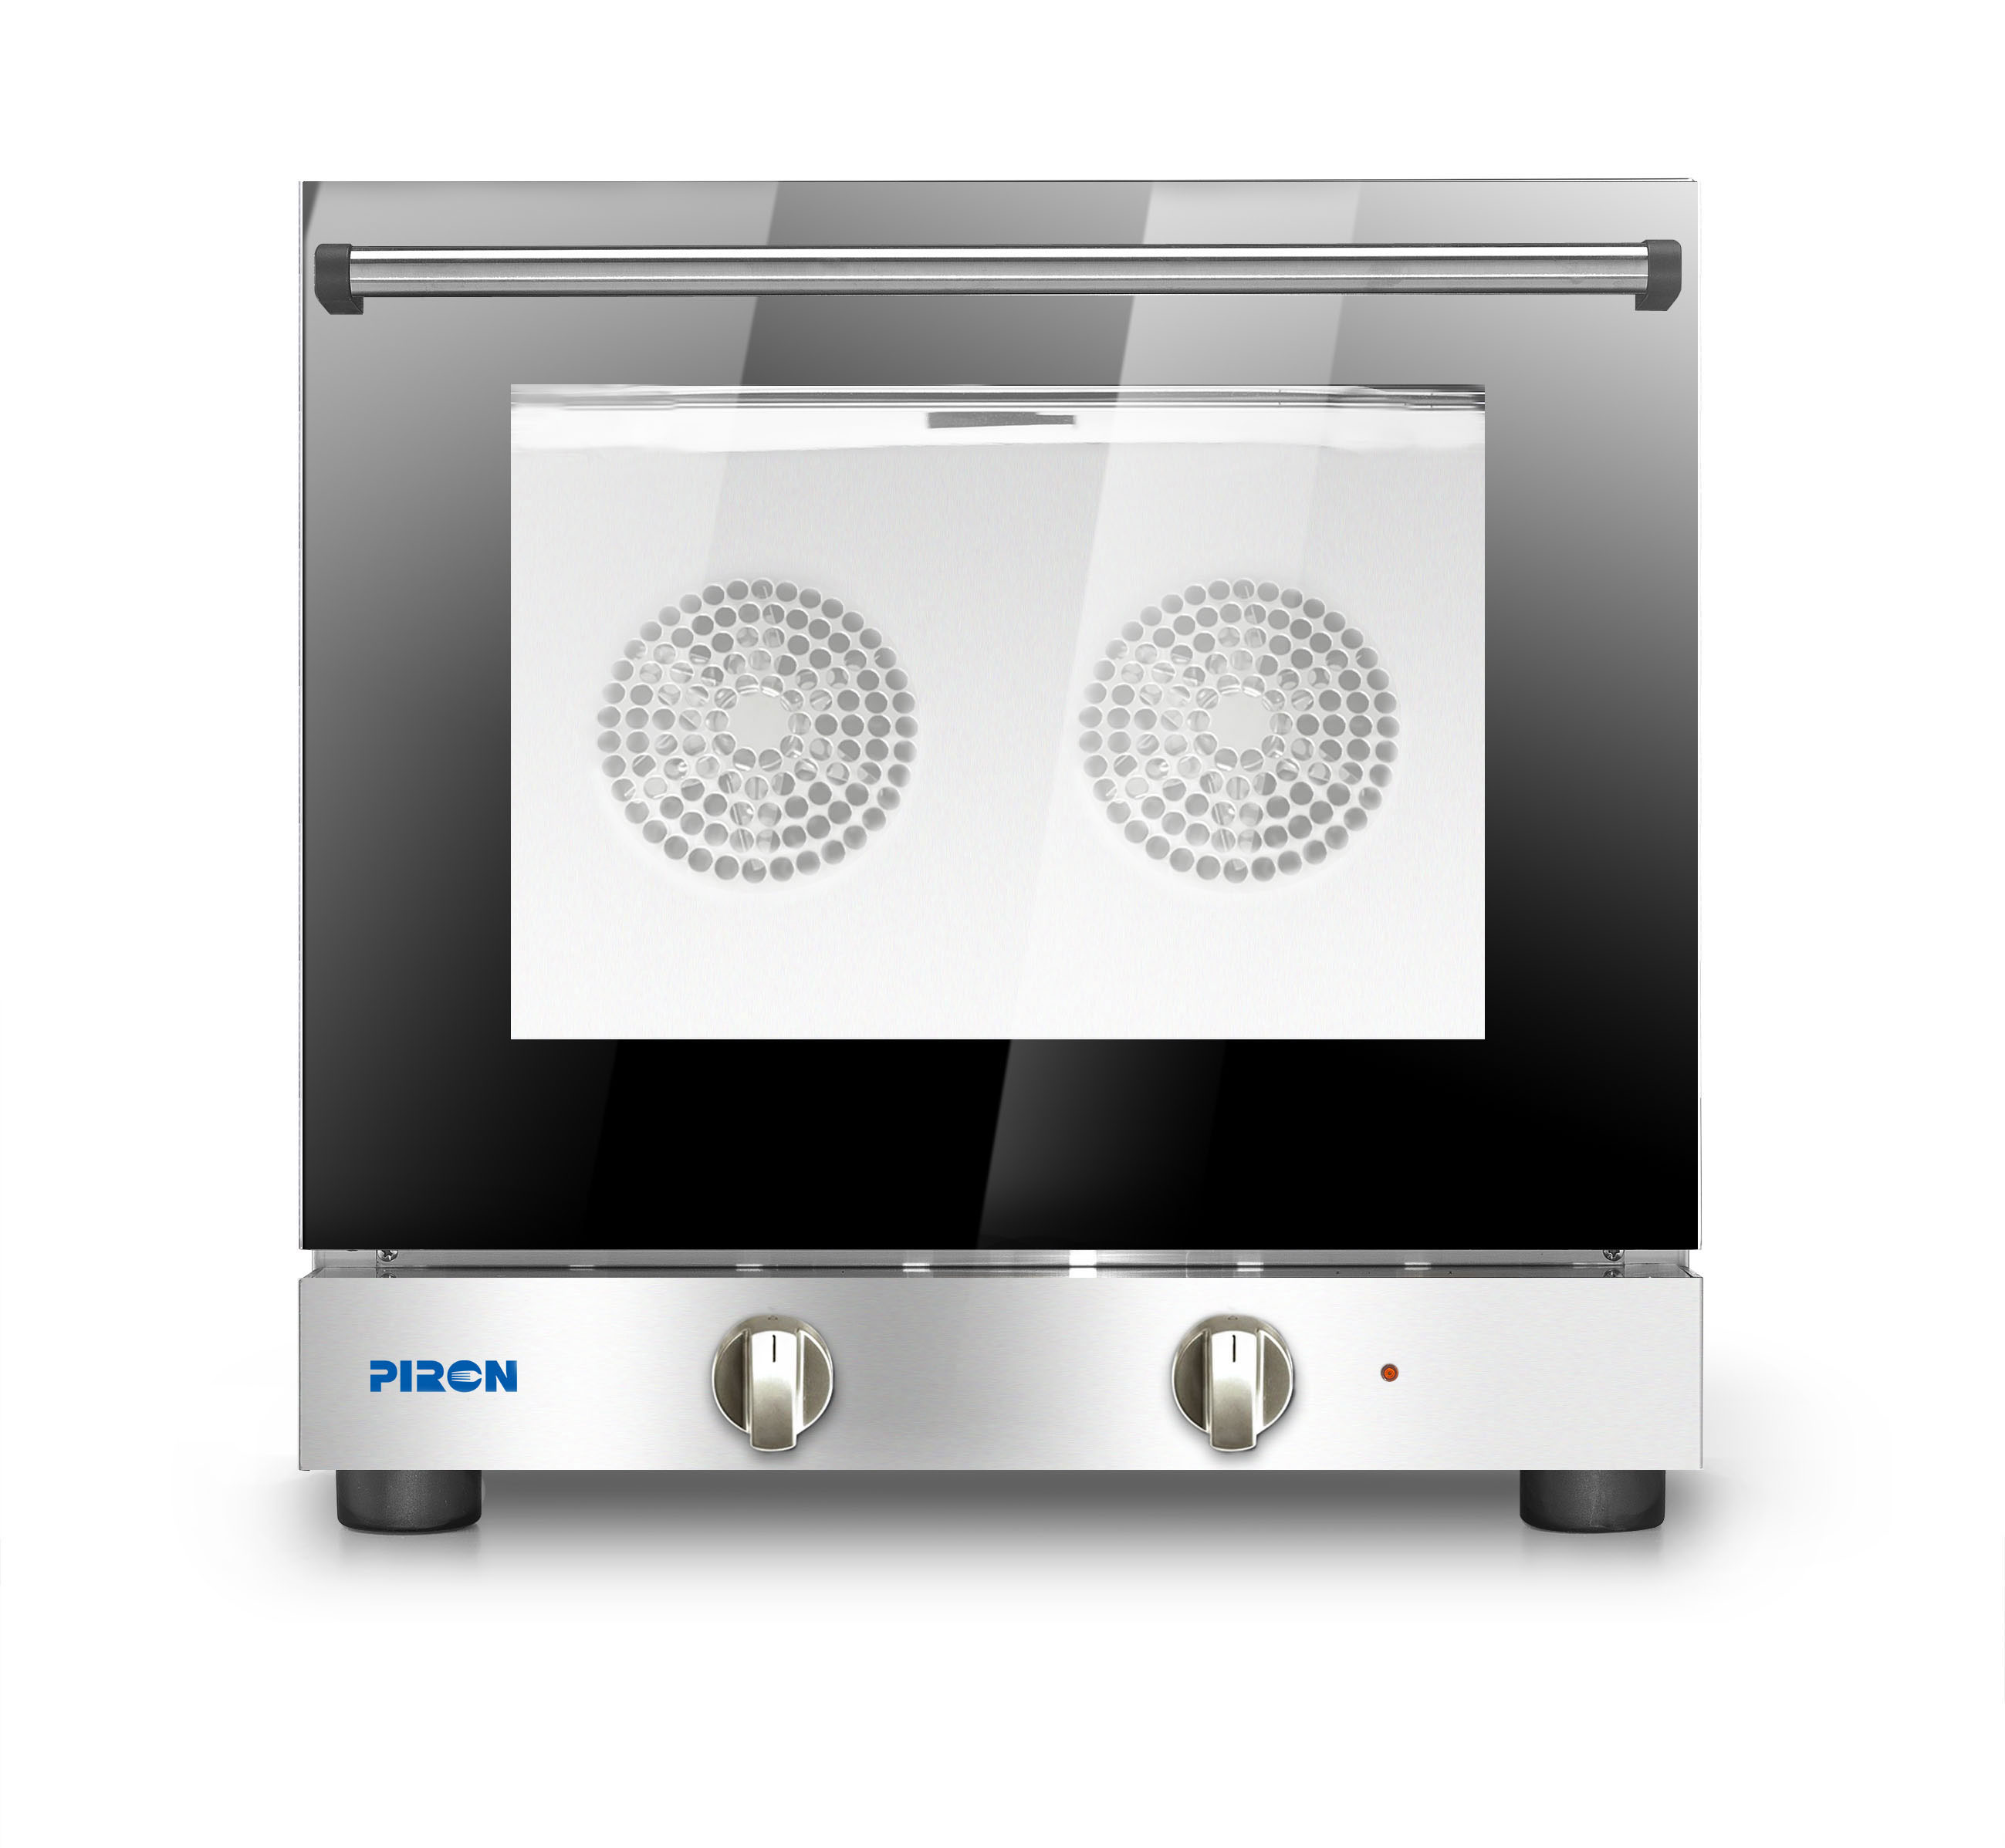 CONVECTION OVEN PIRON [CABOTO] - MANUAL NO HUMIDITY